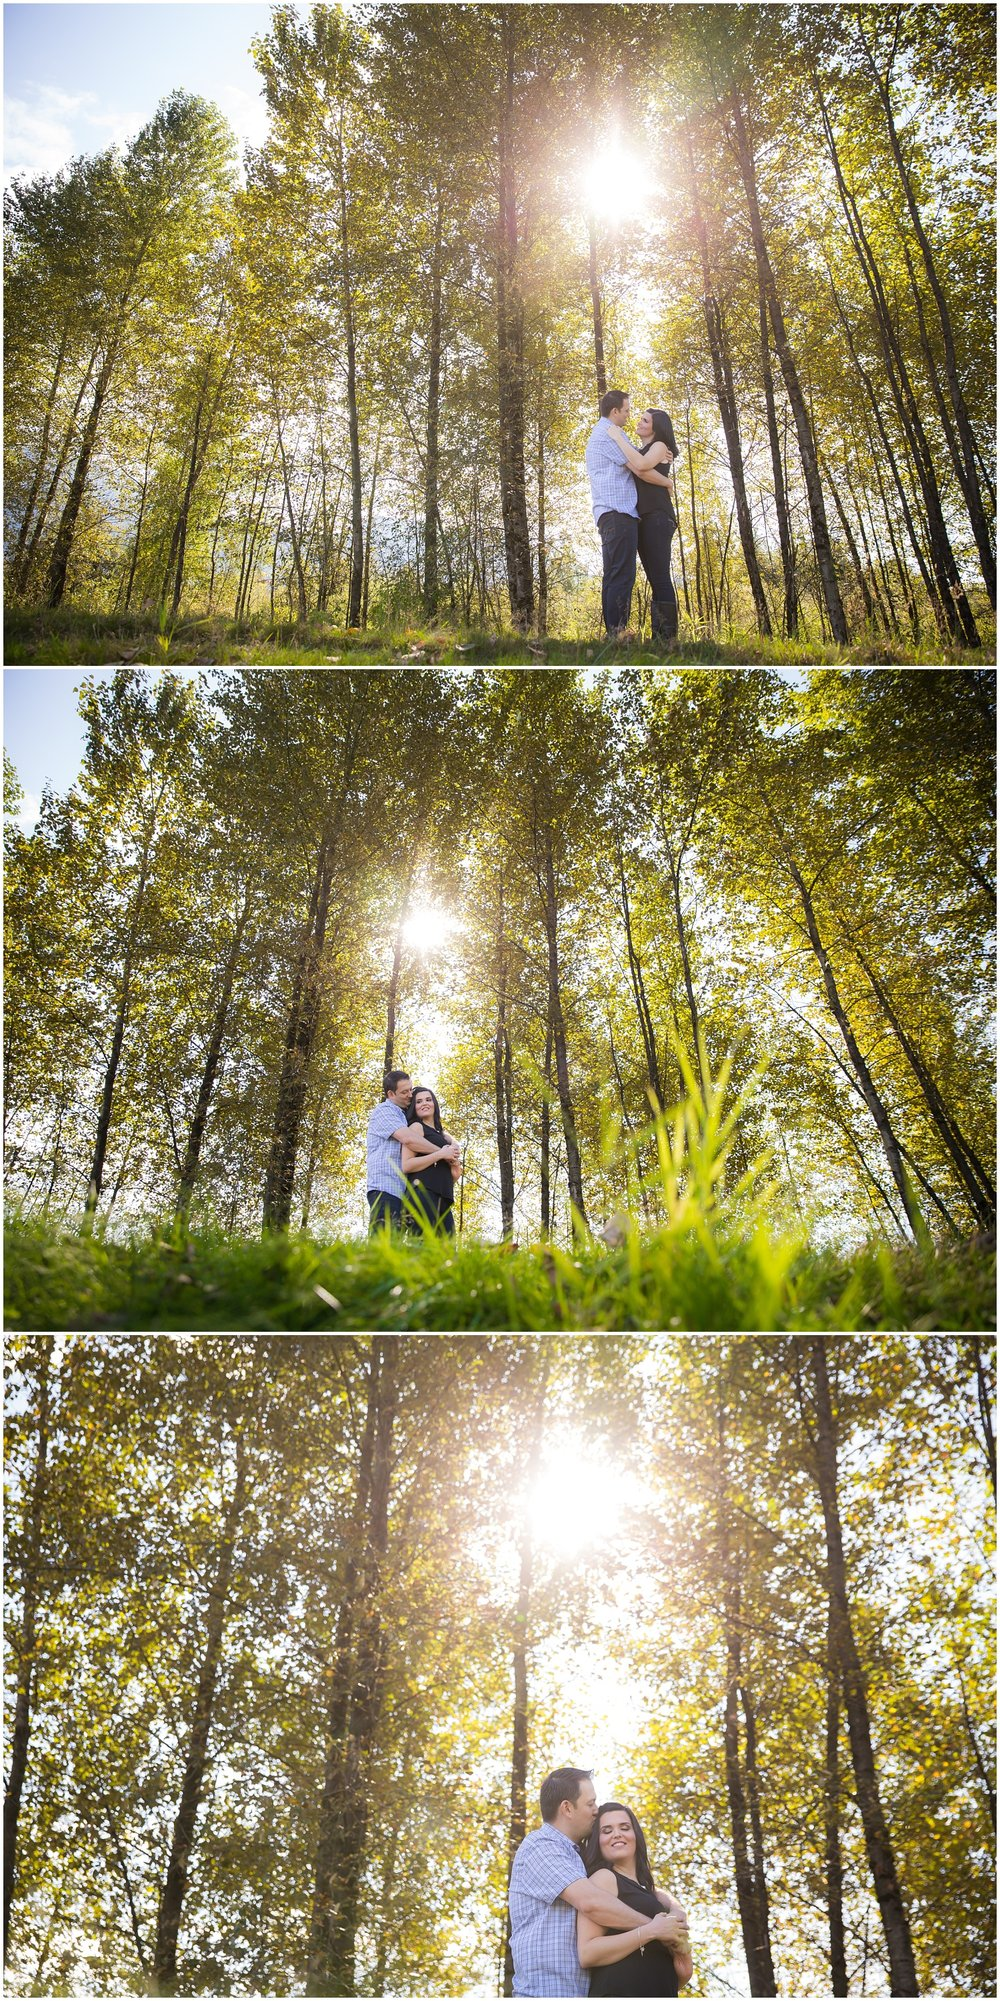 Amazing Day Photography - Pitt Lake Engagement Session - Langley Engagement Photographer (6).jpg